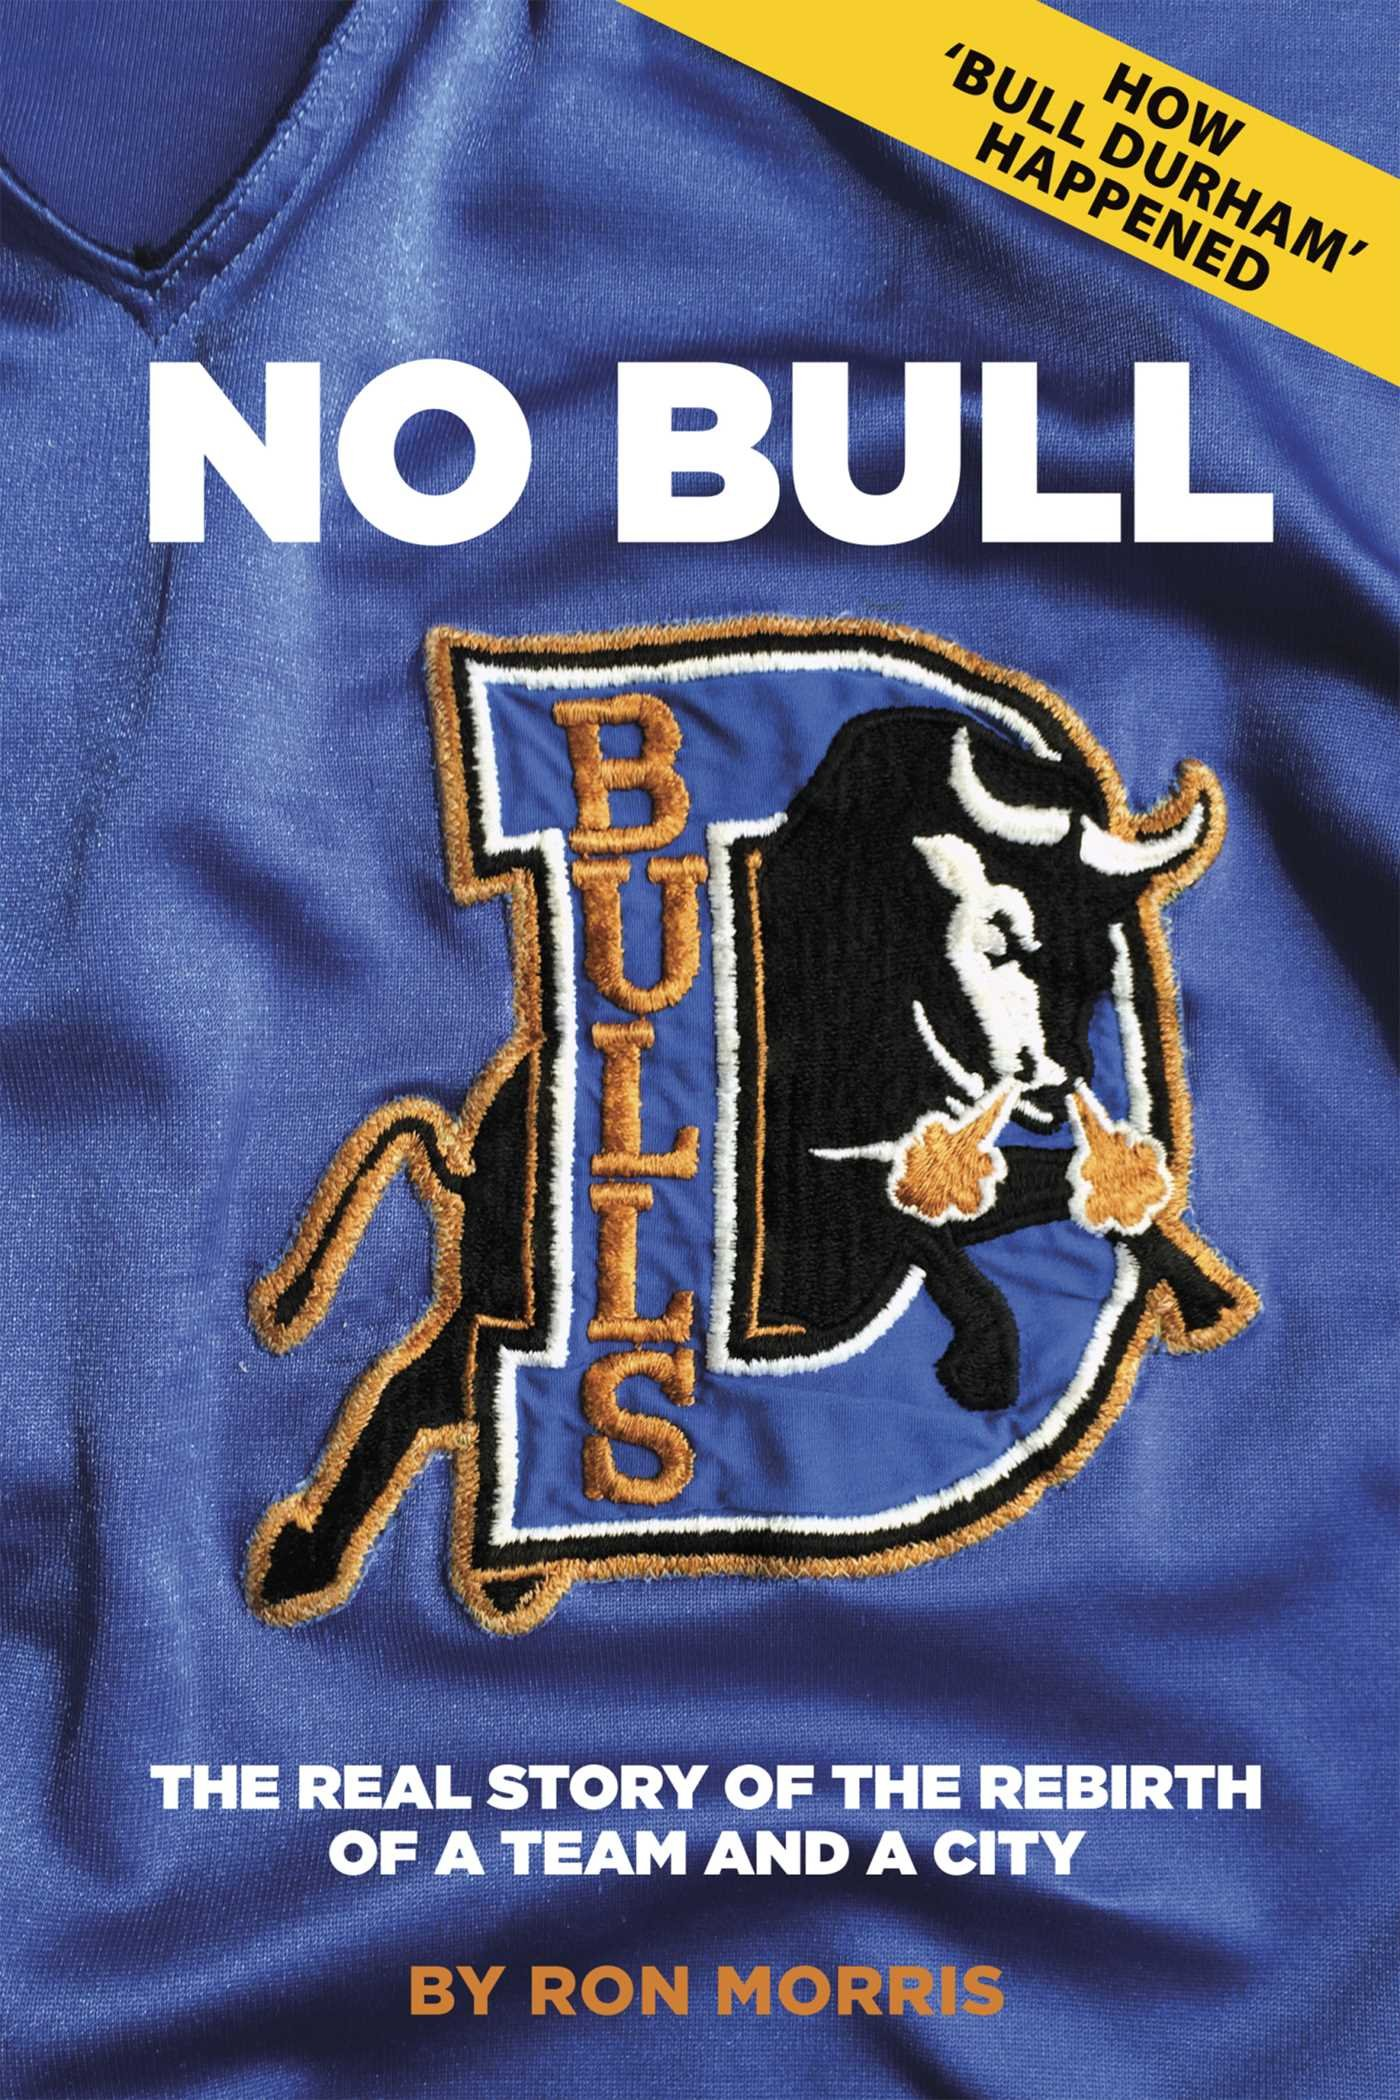 No Bull The Real Story Of The Durham Bulls And The Rebirth Of A